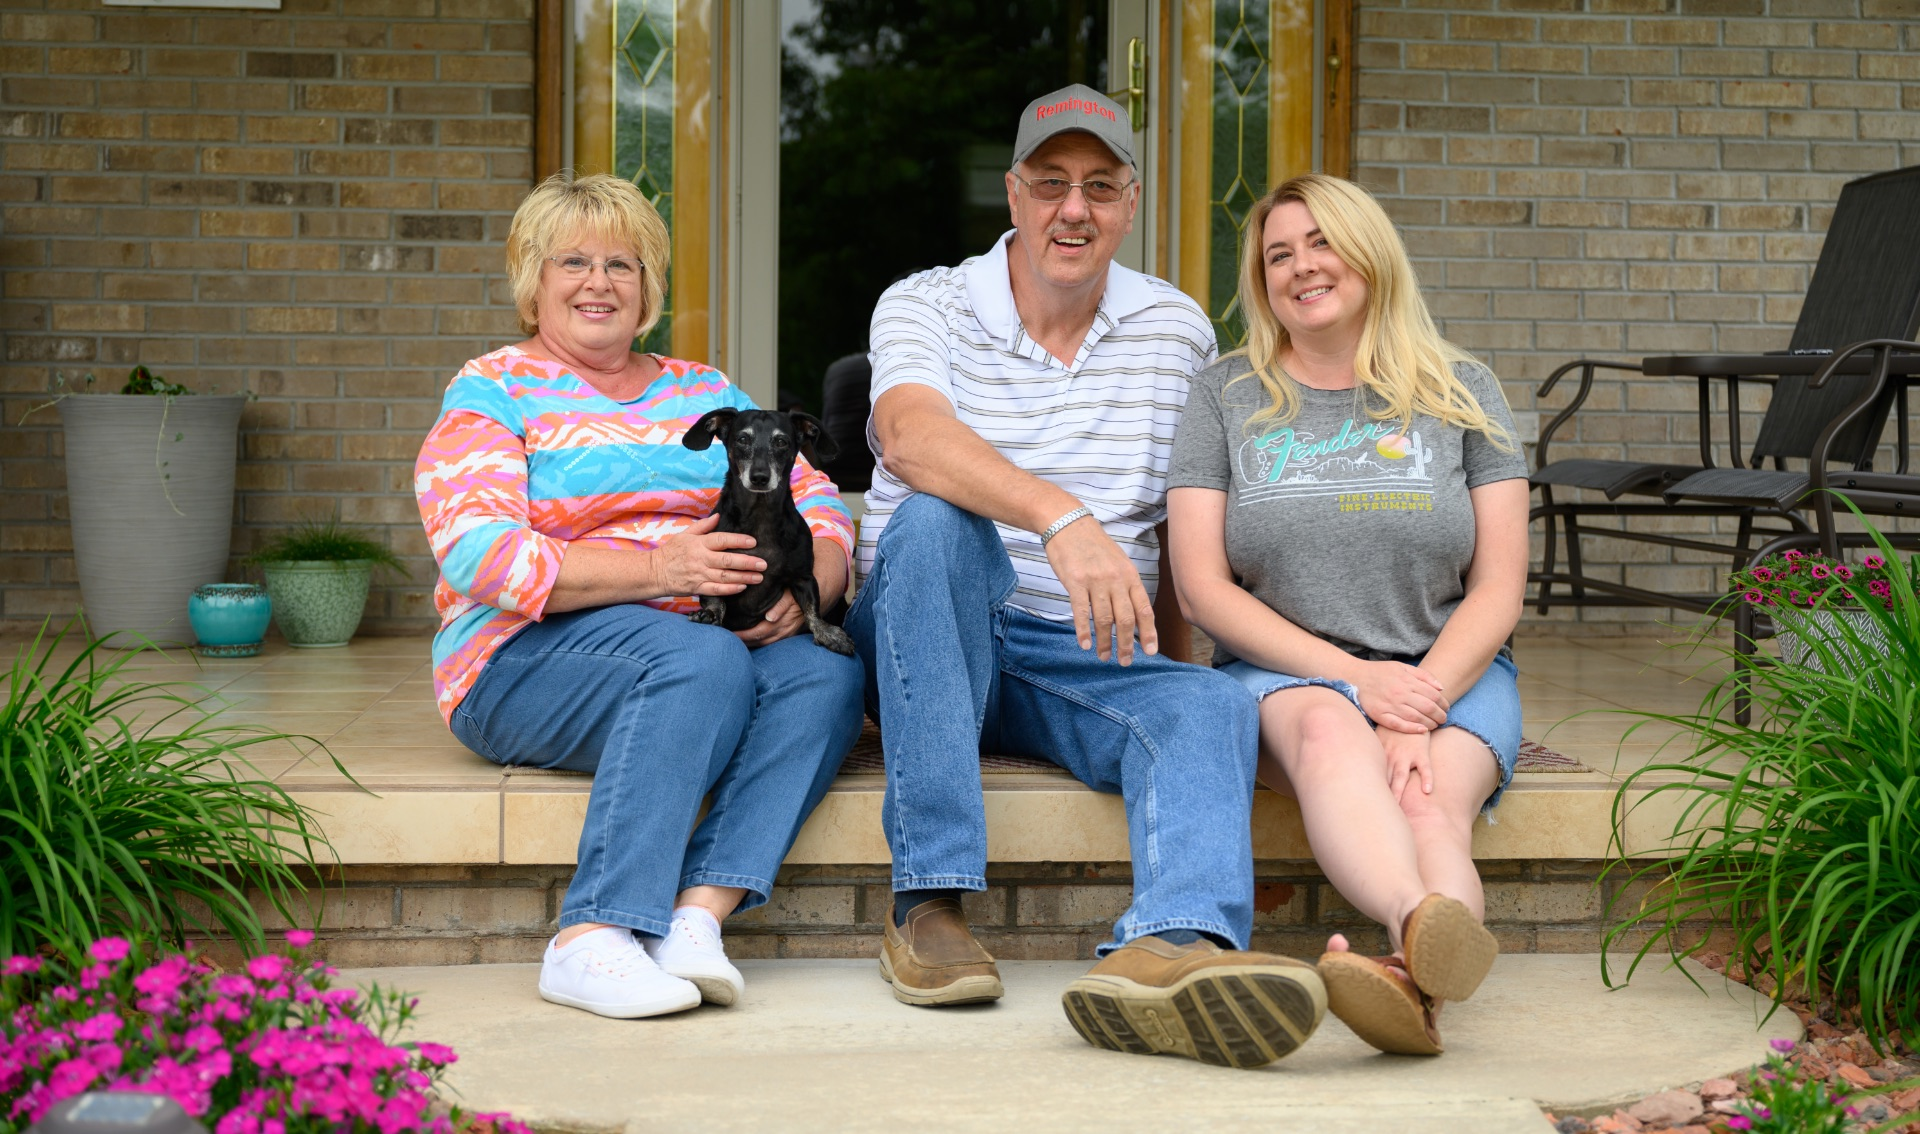 Danny, his wife, and his daughter—a middle-aged woman with blonde hair—smile and sit side by side in front of the house.